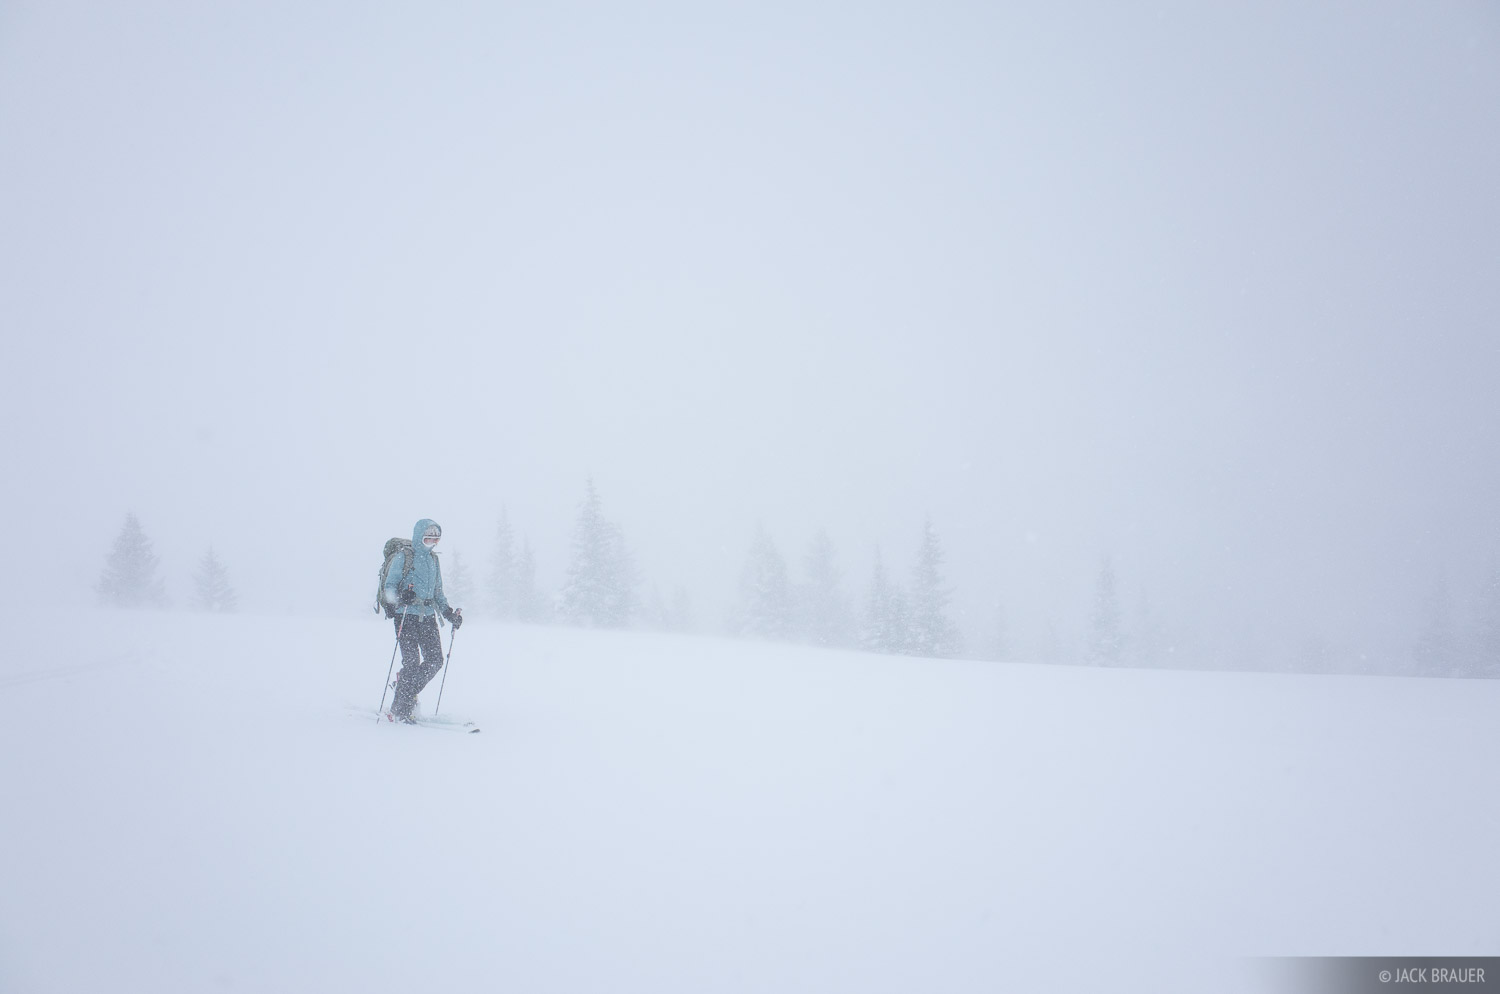 Colorado, Fowler Hilliard, Gore Range, January, skiing, Fowler/Hilliard, winter, active, 2014